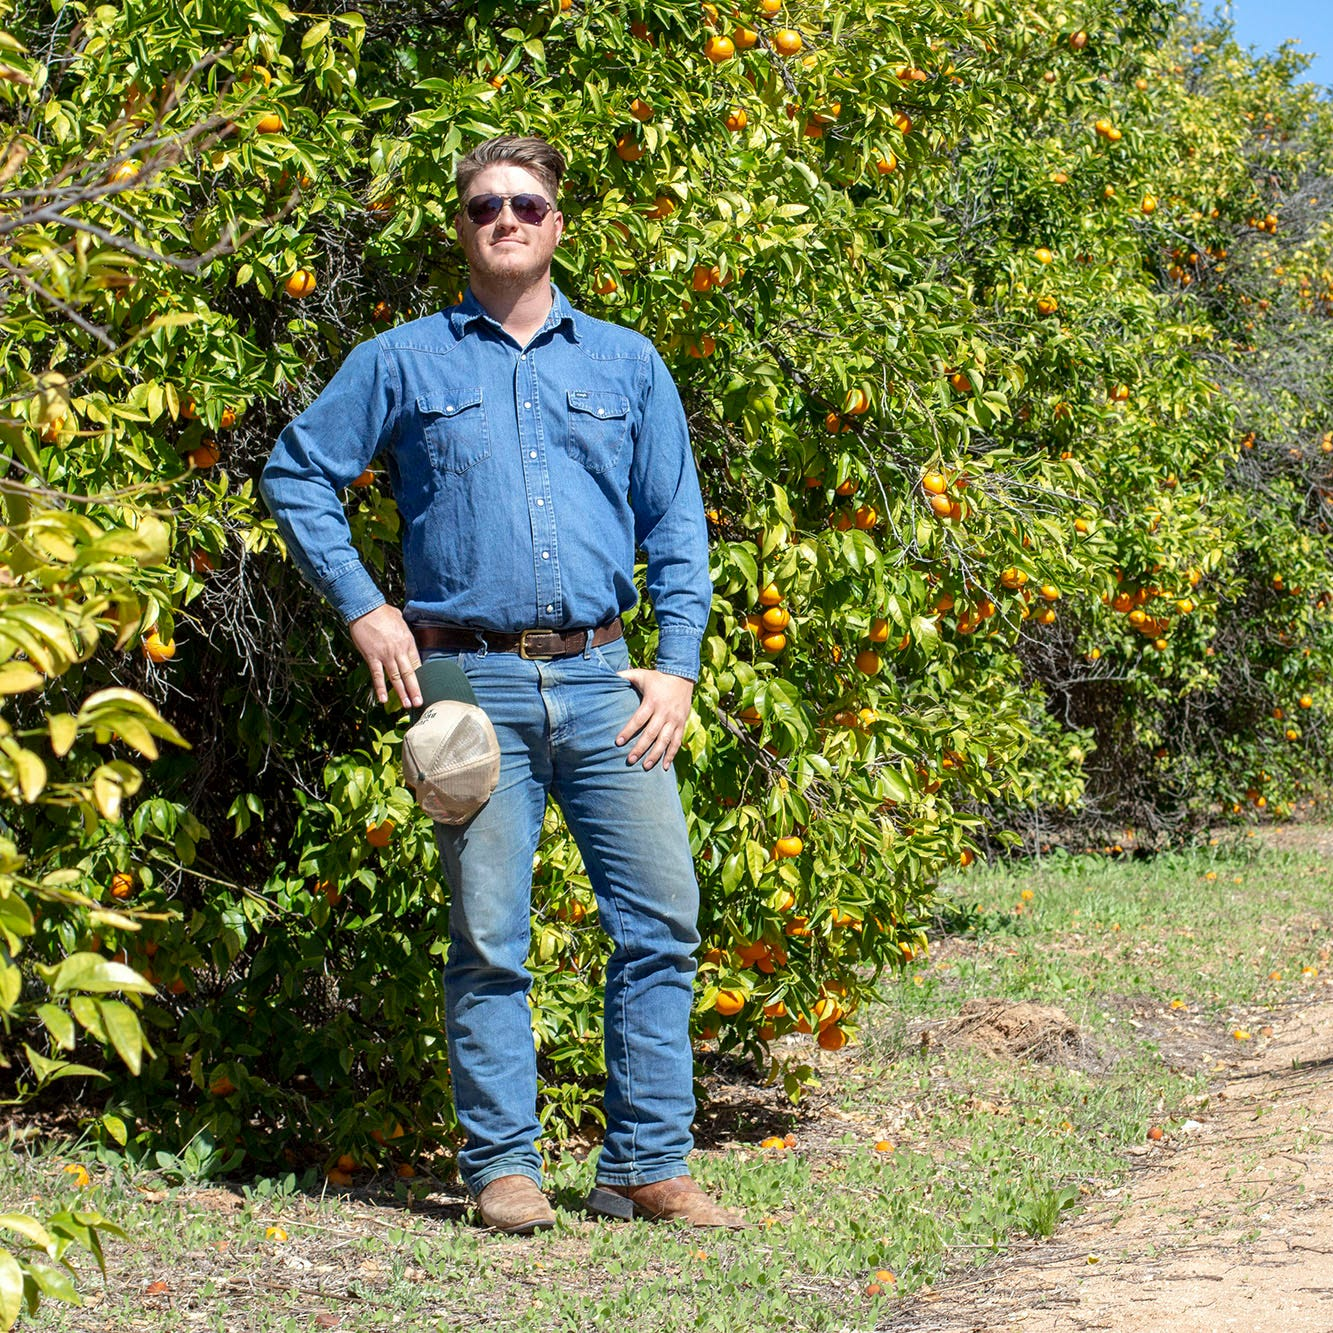 Citrus squeeze: Pushed by development, costs, citrus shrinks in state economy